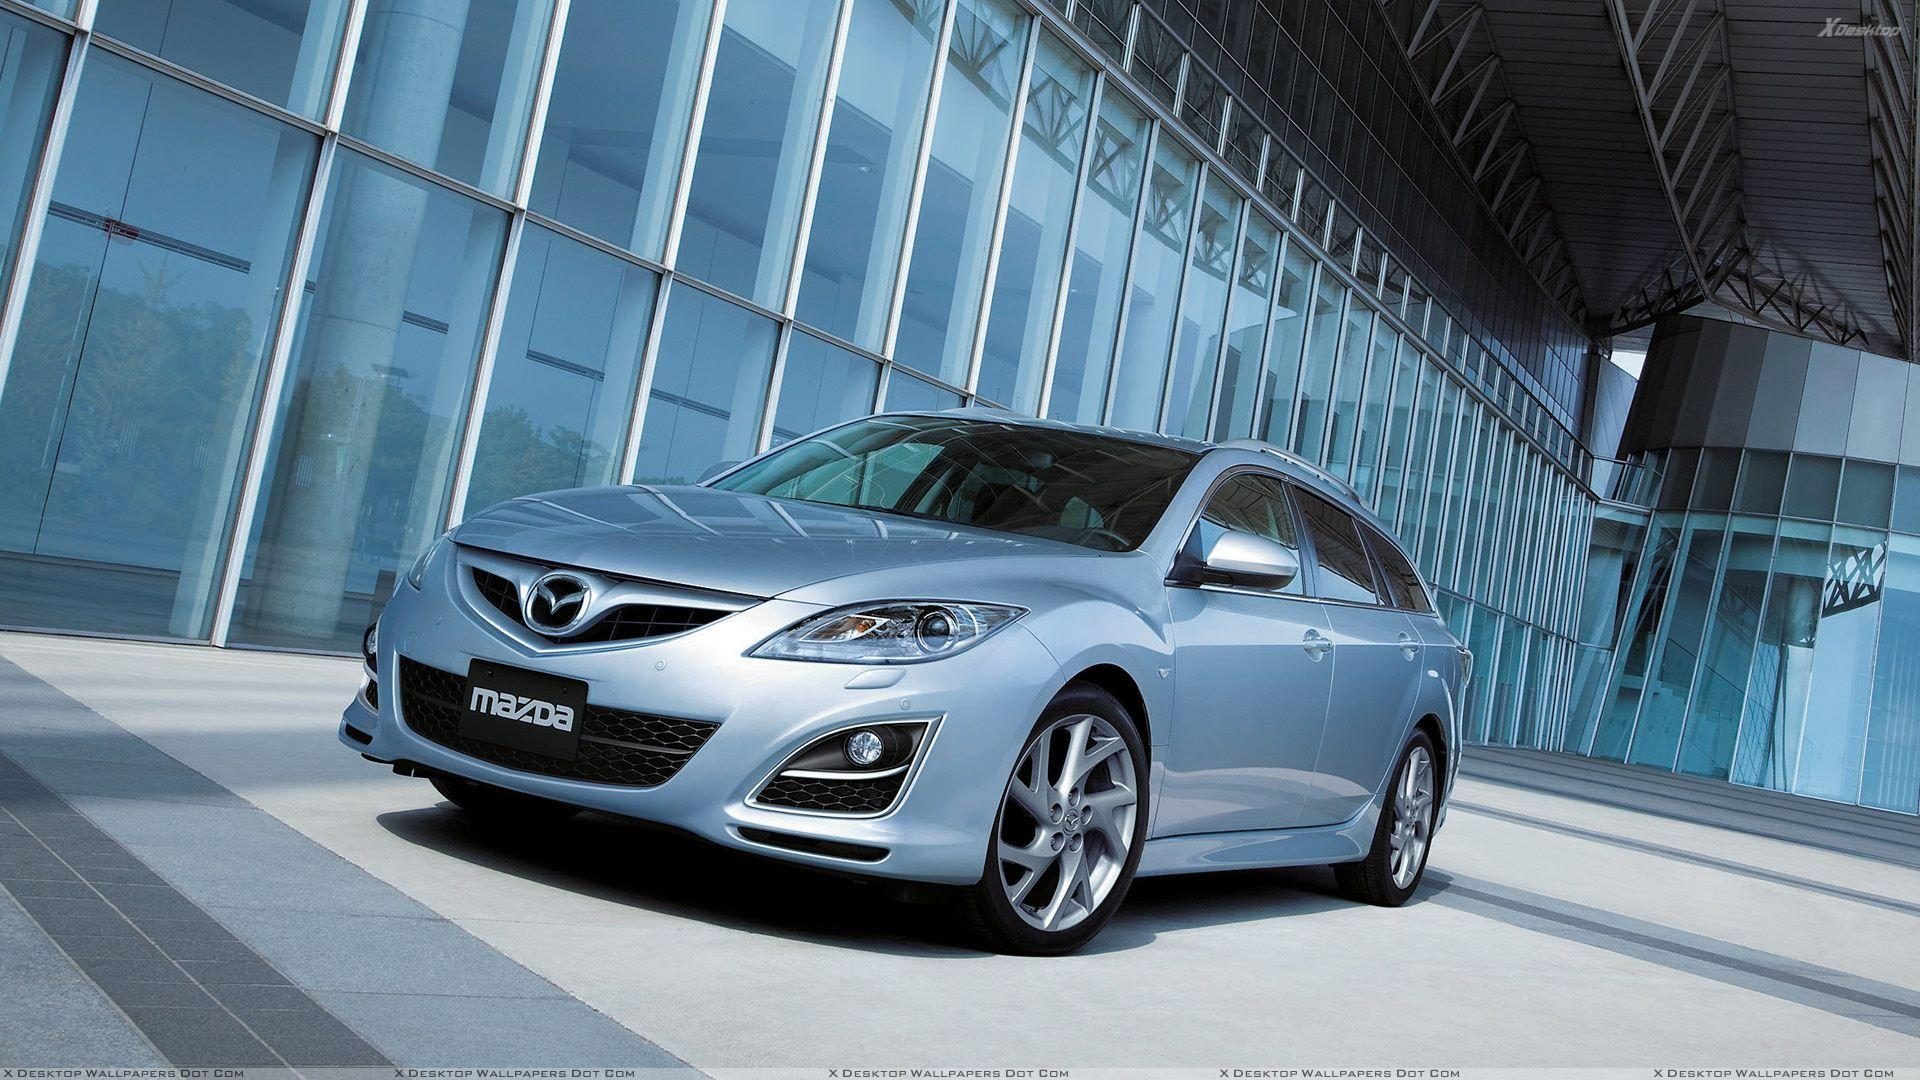 Mazda 6 Wallpapers, Photos & Images in HD